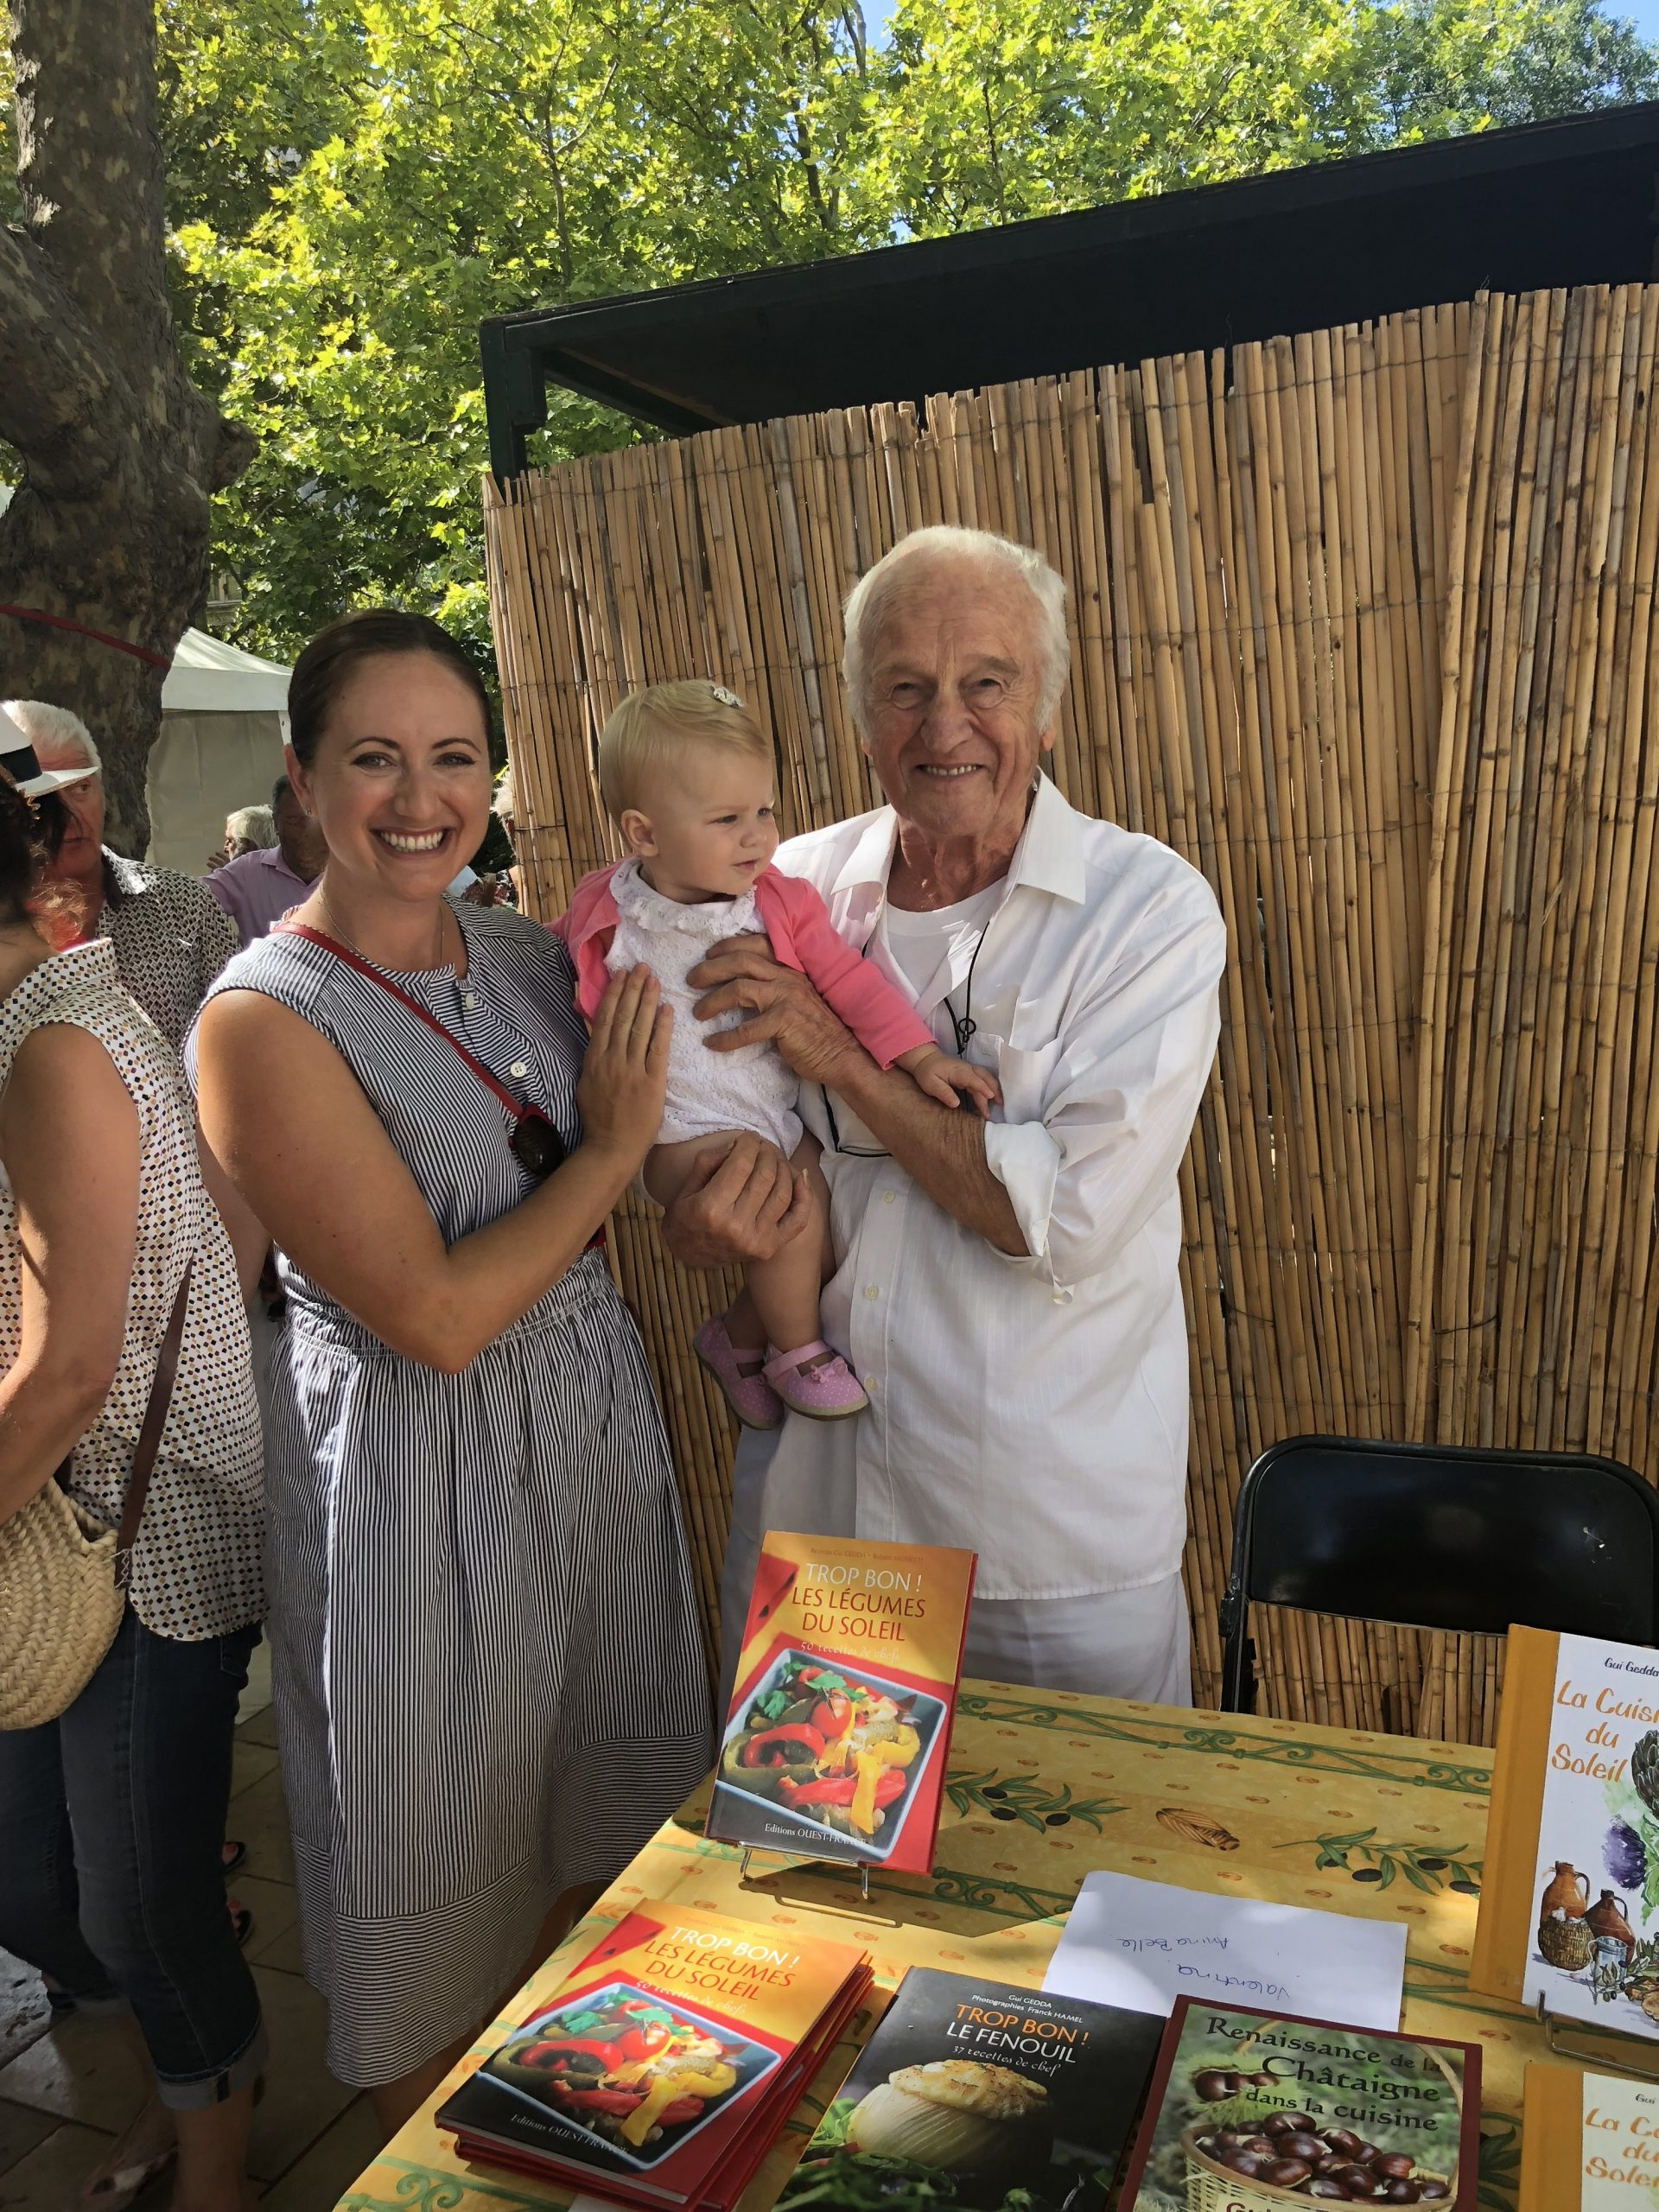 Chef Guy Gedda and the author at the Fig Festival in the South of France